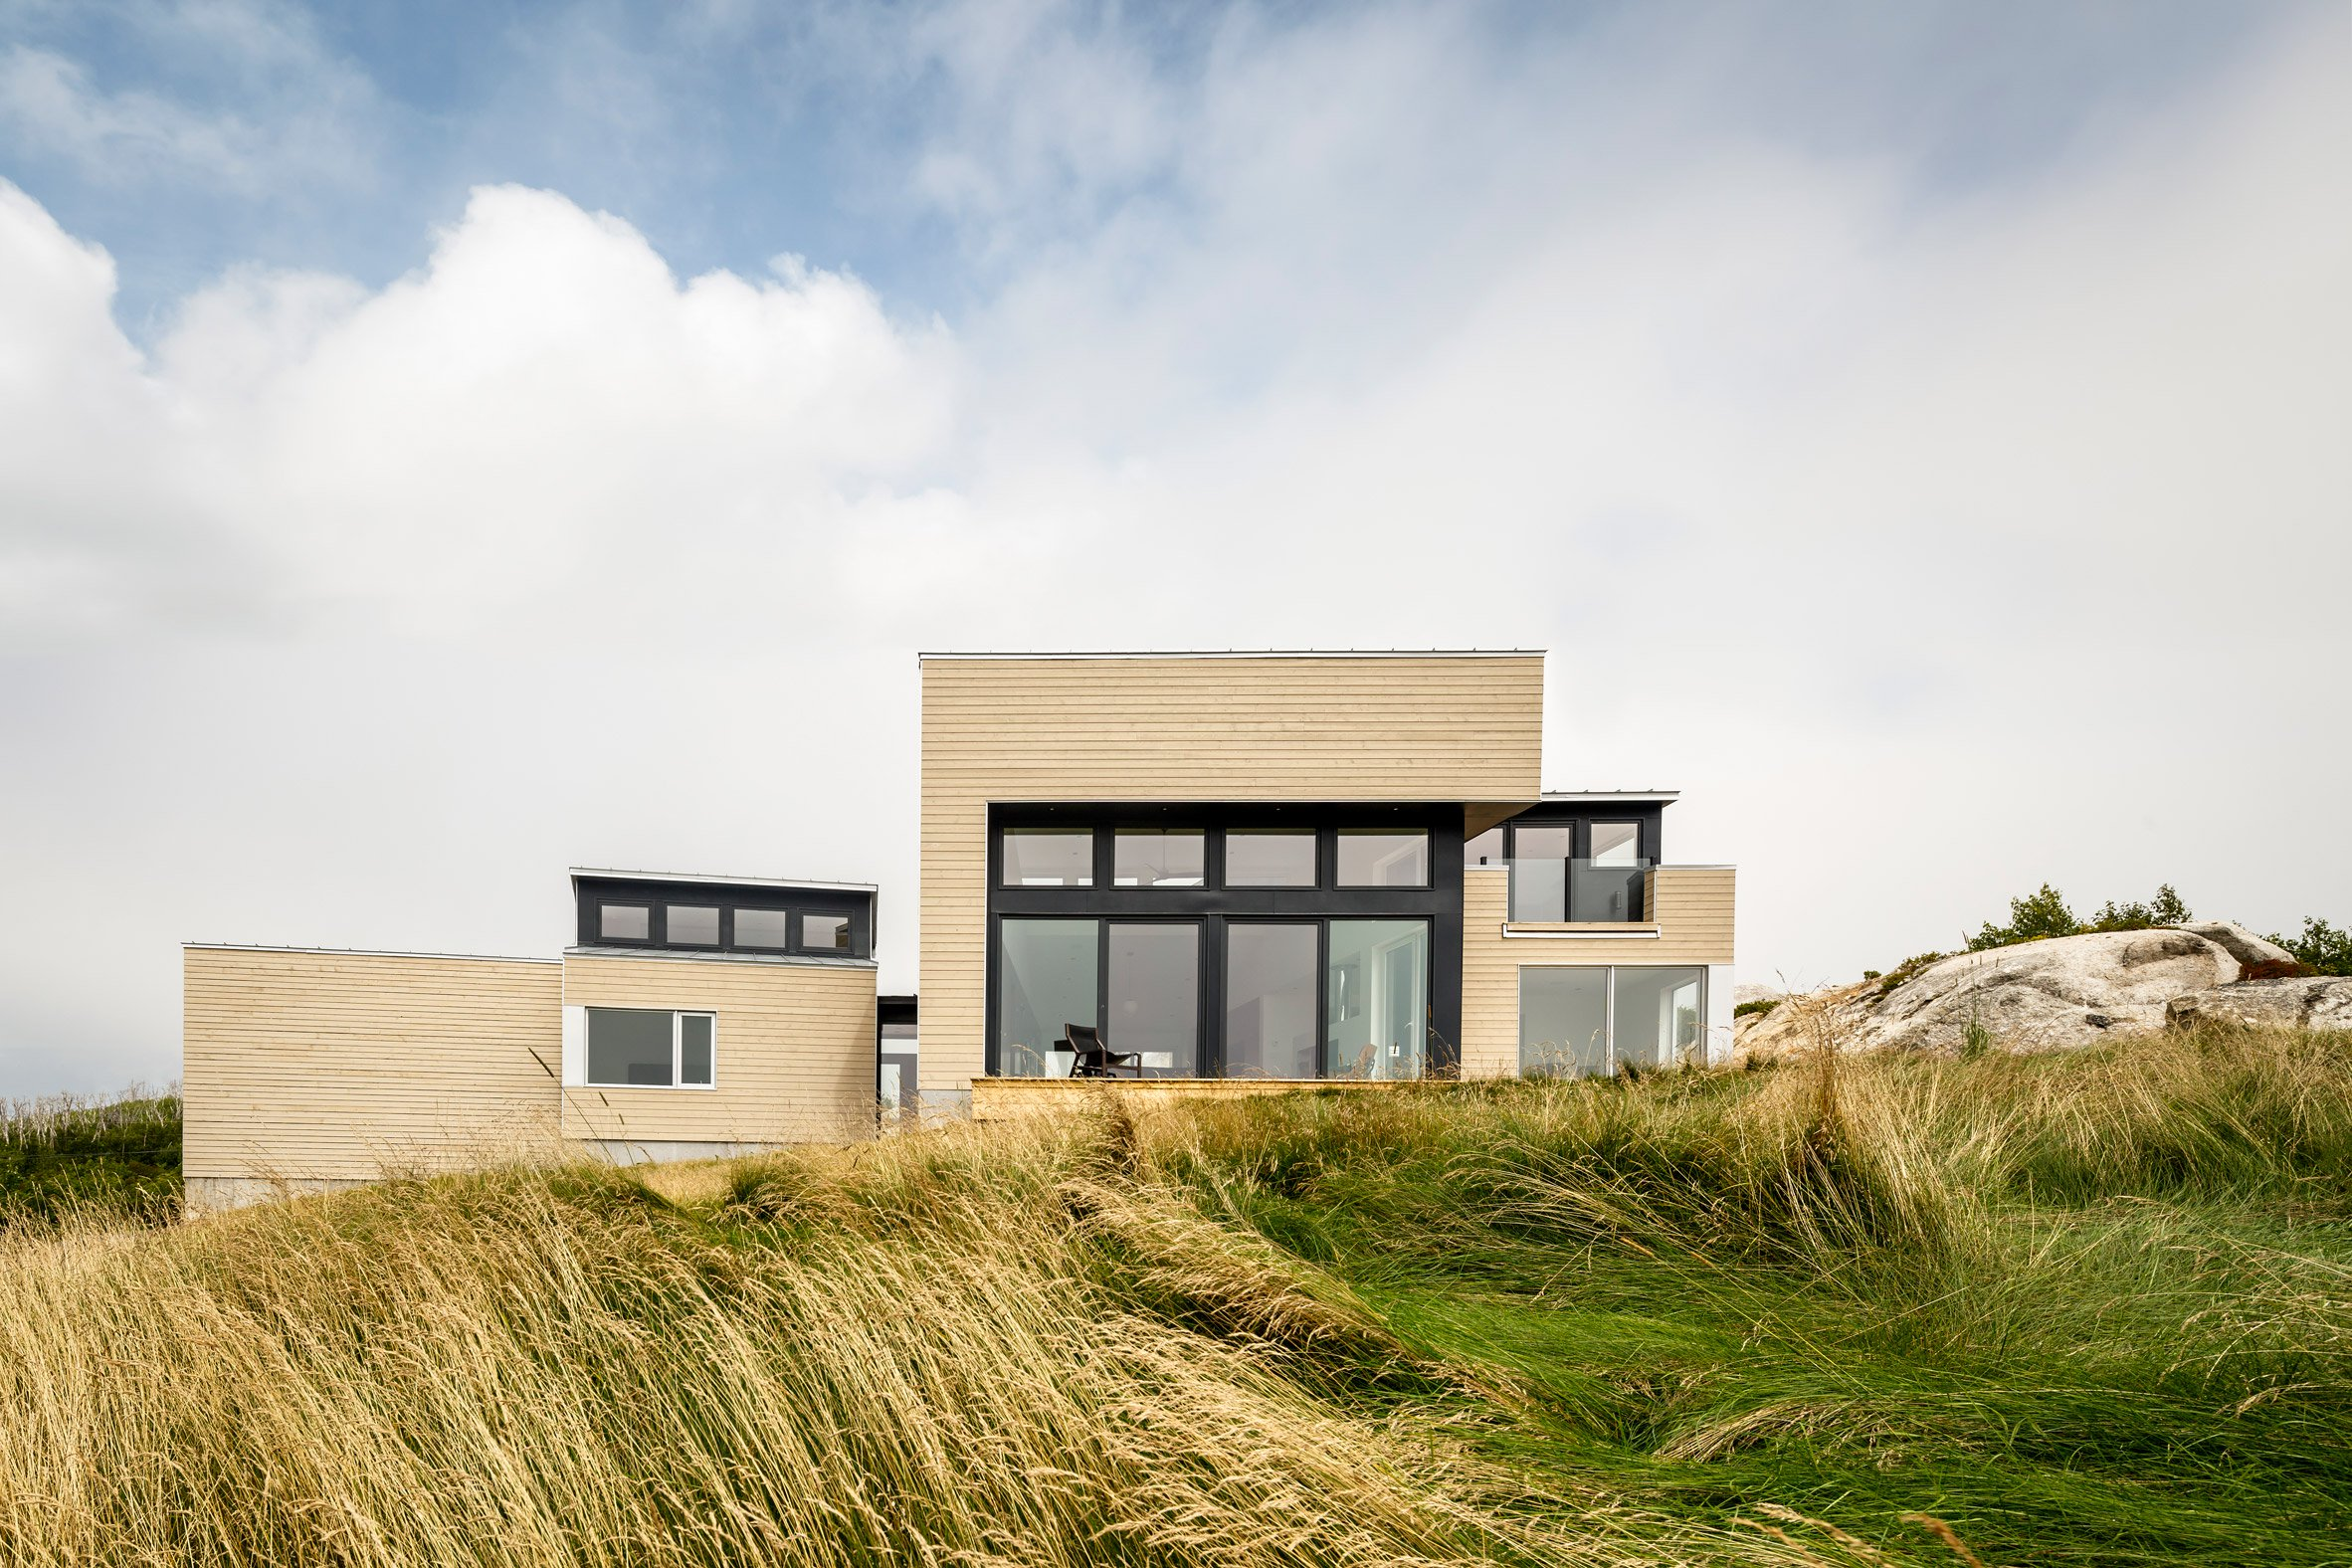 Nova Scotian house by Omar Gandhi Architect sits between rocky outcrop and expansive views